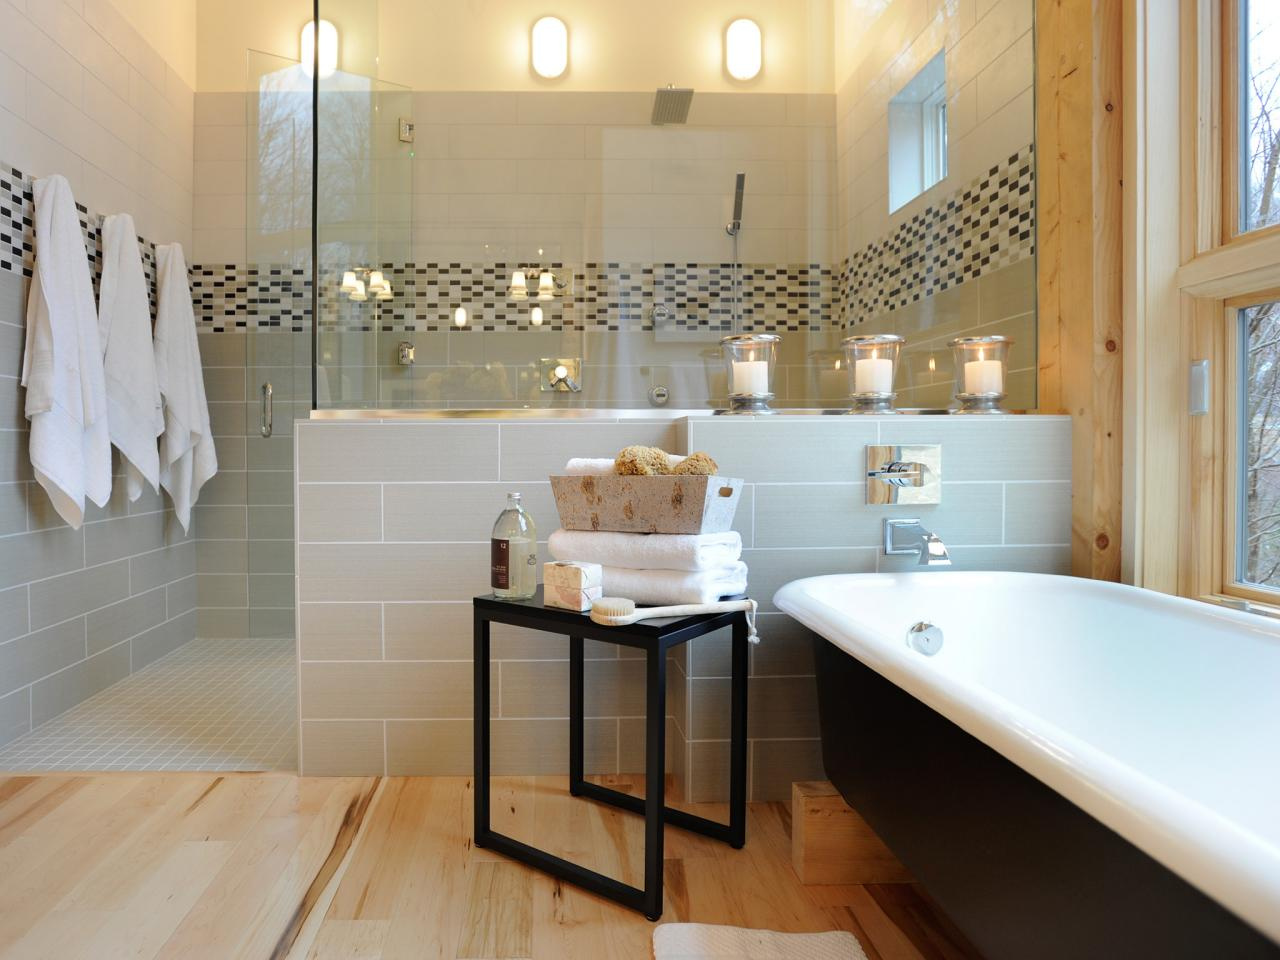 Spa bathroom makeover photos bathroom ideas designs hgtv Hgtv bathroom remodel pictures